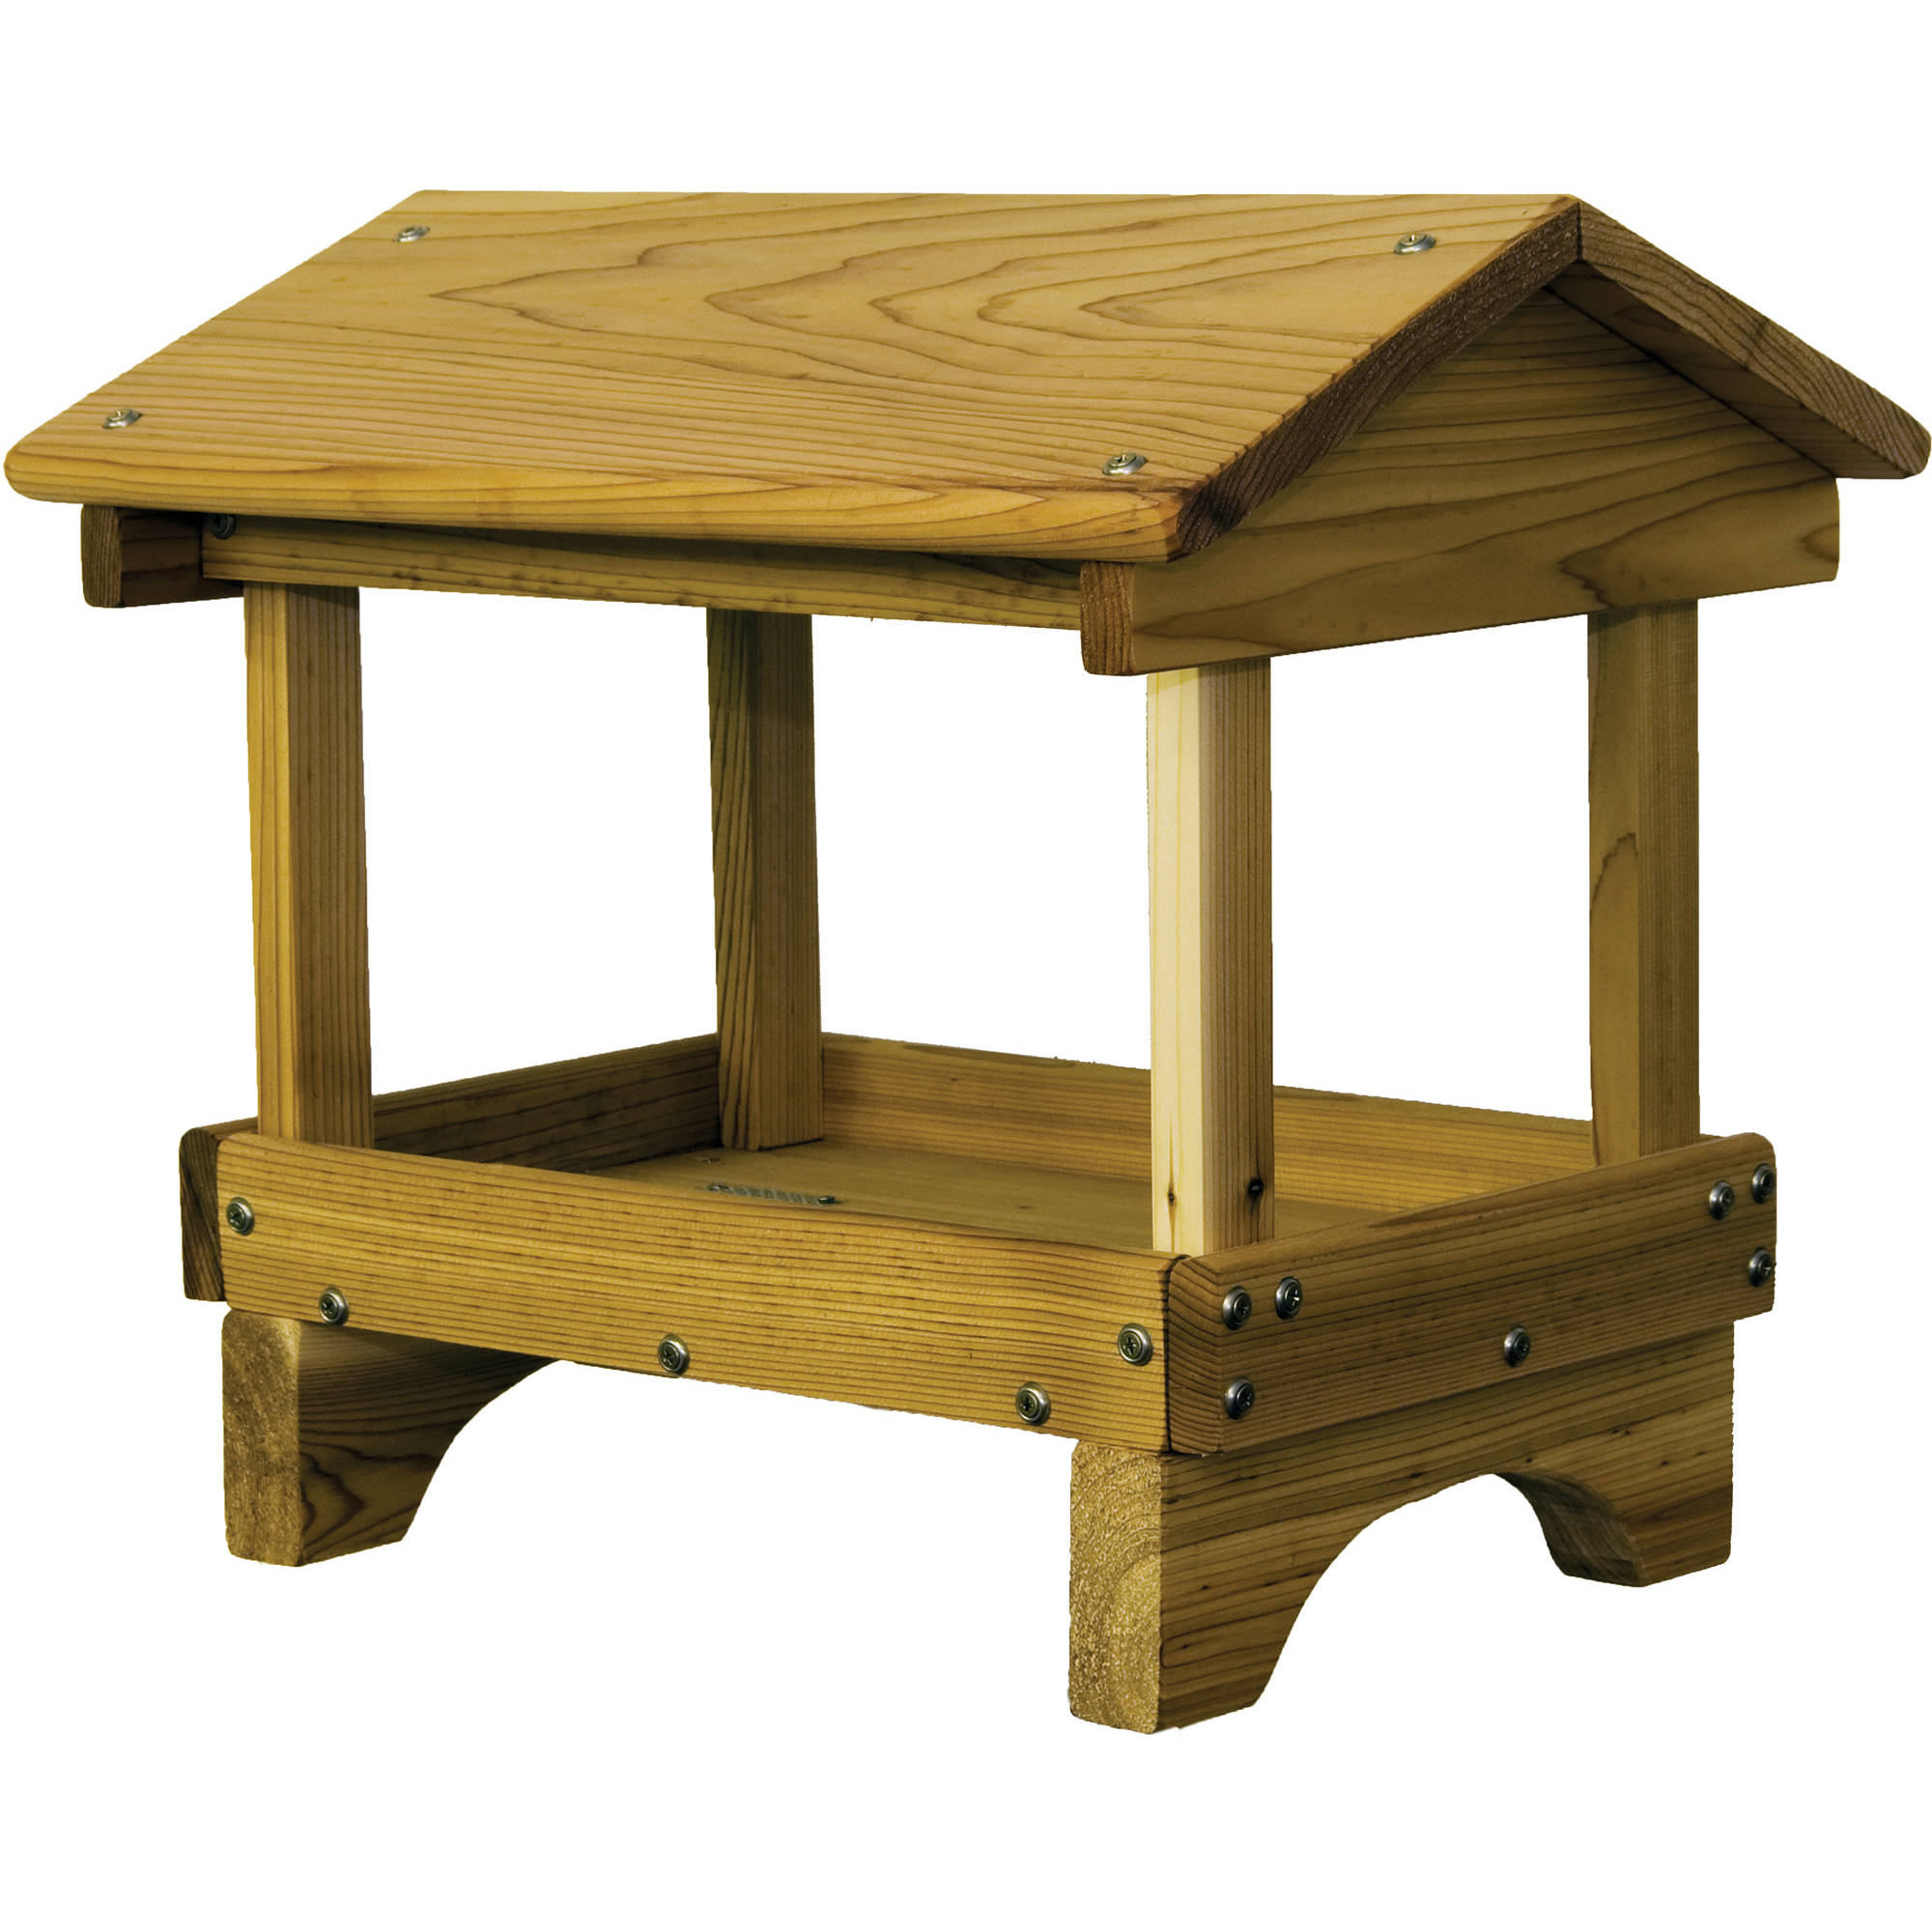 "Stovall SP5F 17"" x 15"" x 20"" Wood Pavillon Feeder"